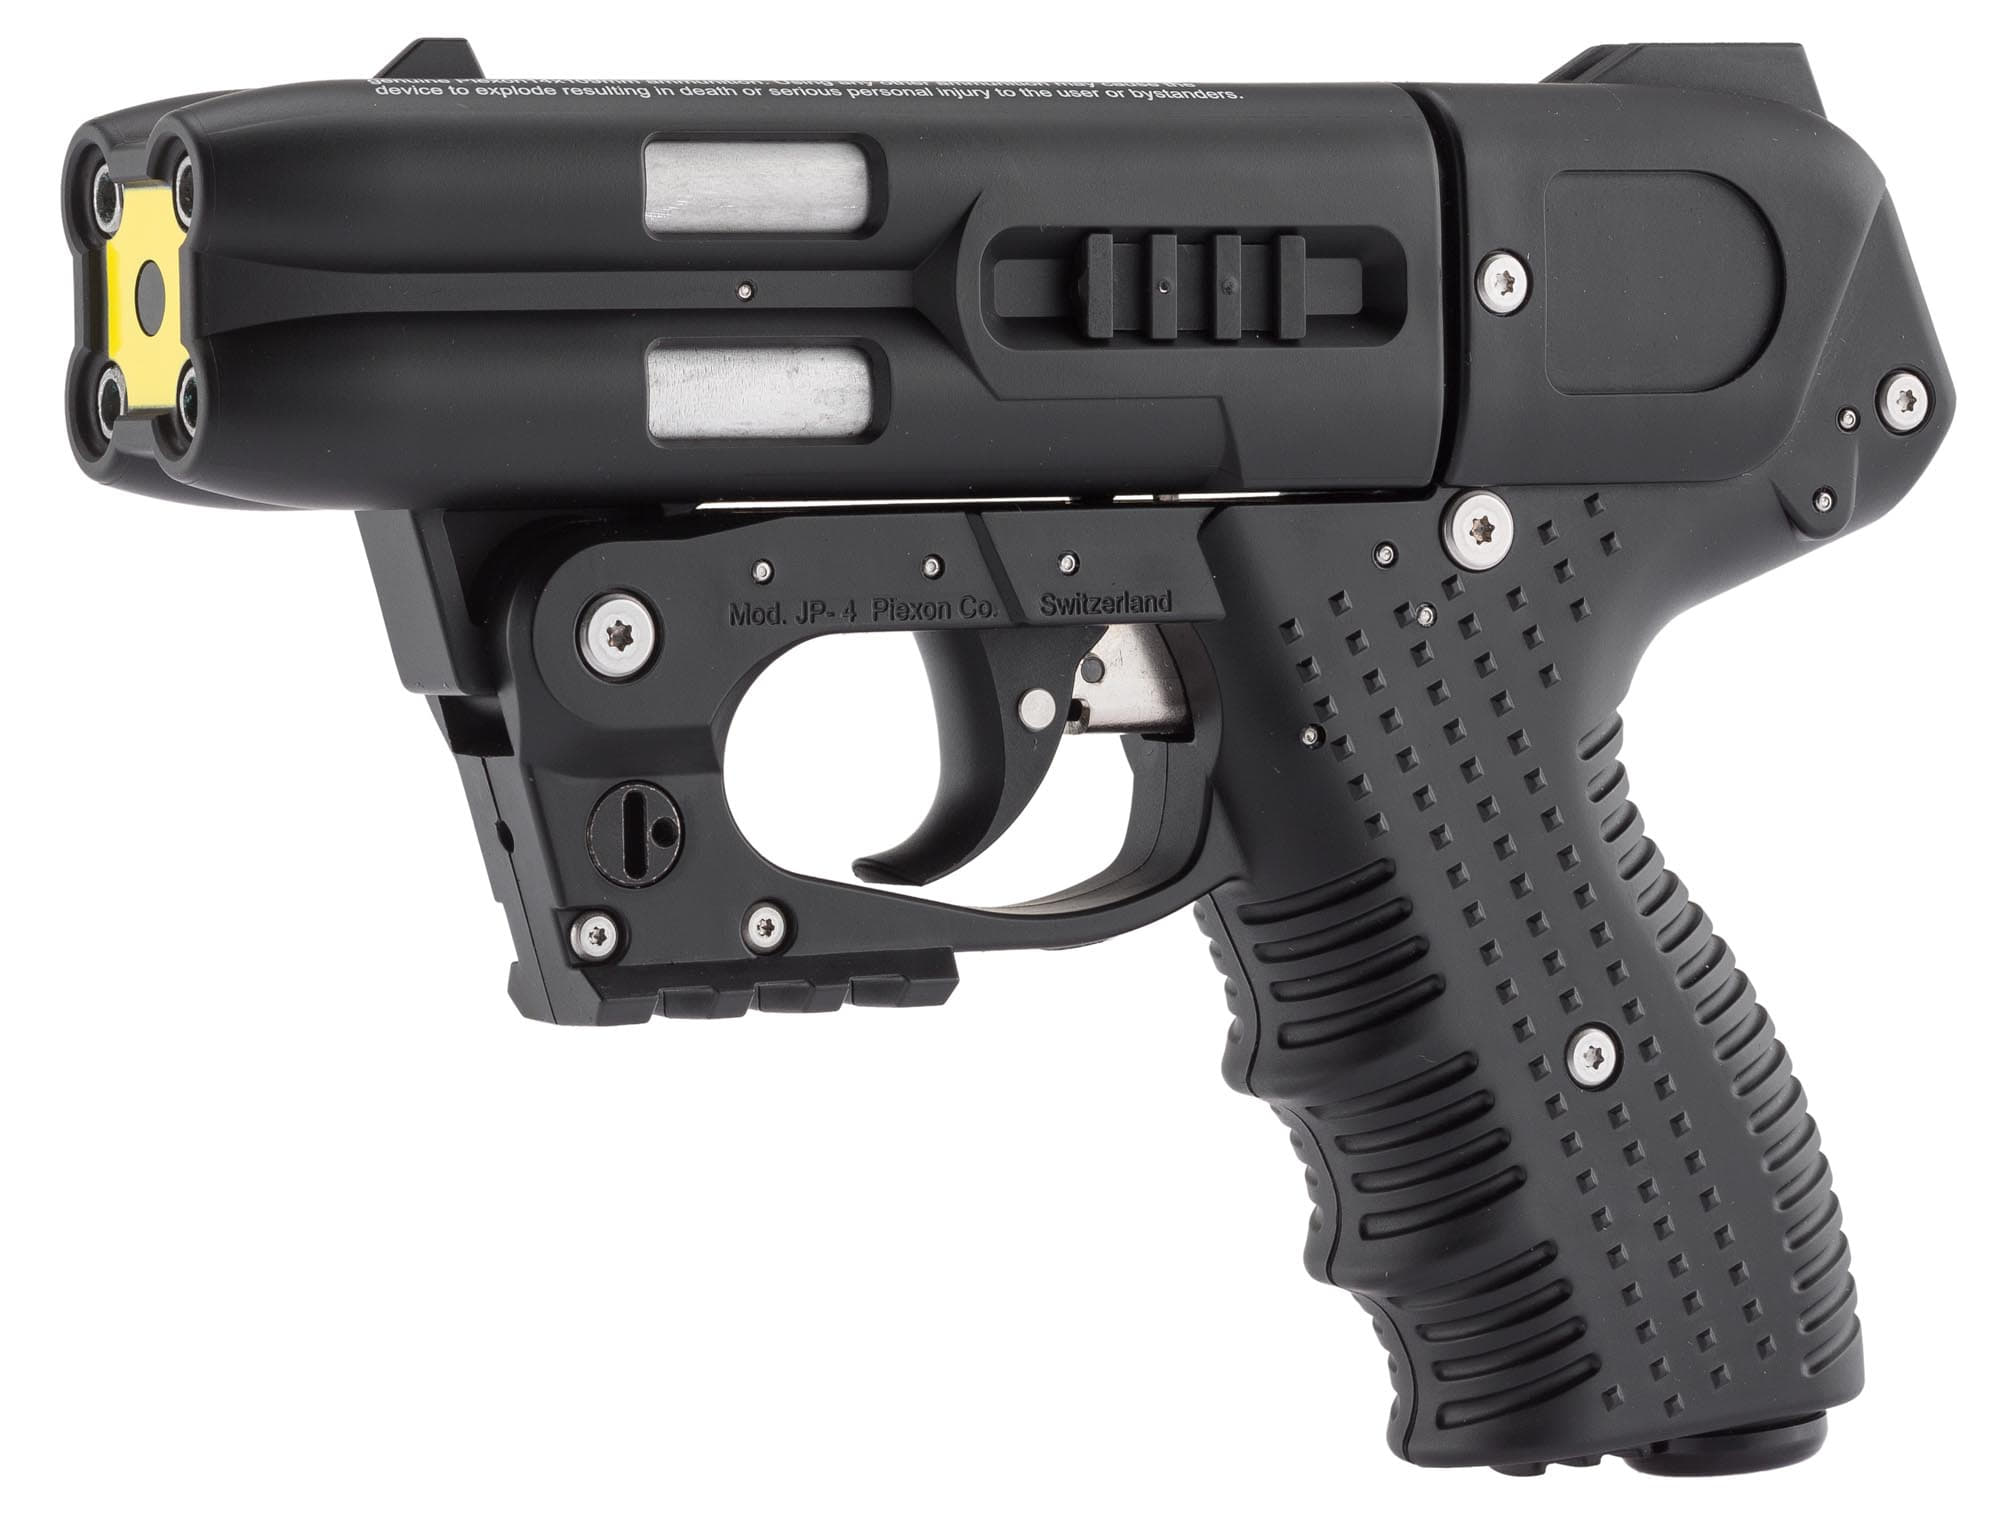 JPX151L-8-Jet JPX 4 Laser Noir Compact + 4 cartouches oc + Holster - JPX151L